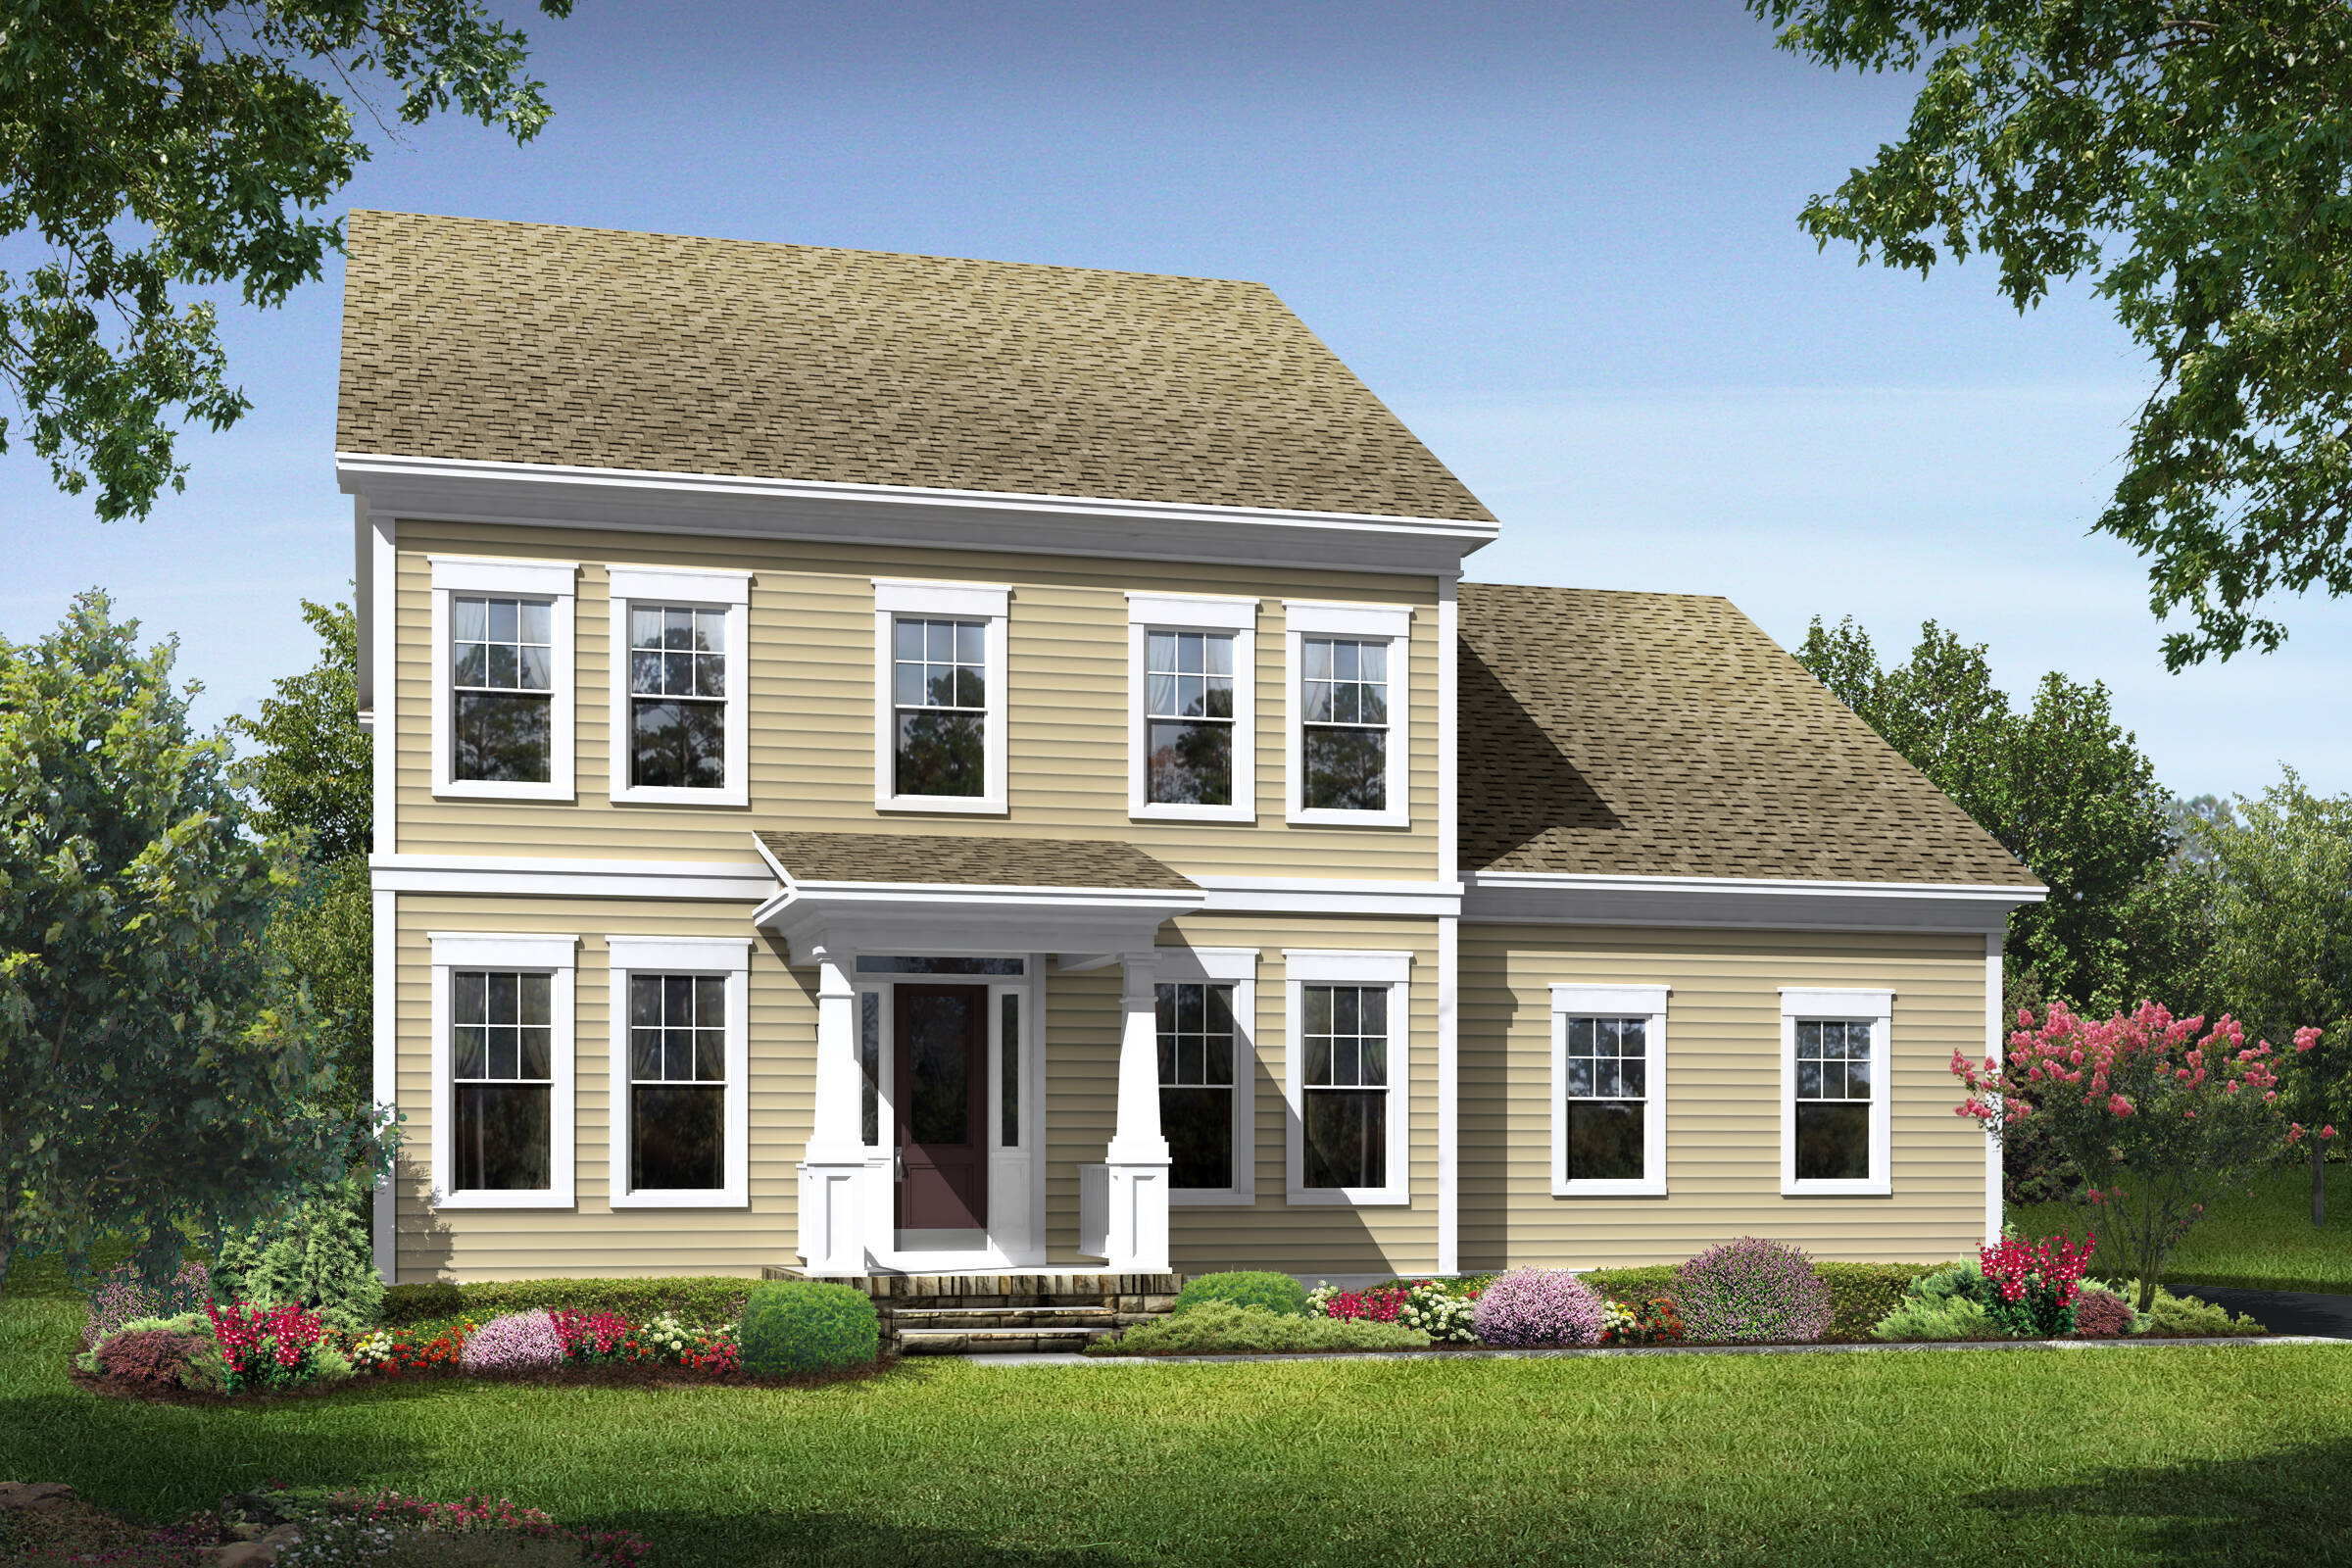 oxfordshire-i-d-new-homes-at-willowsford-greens